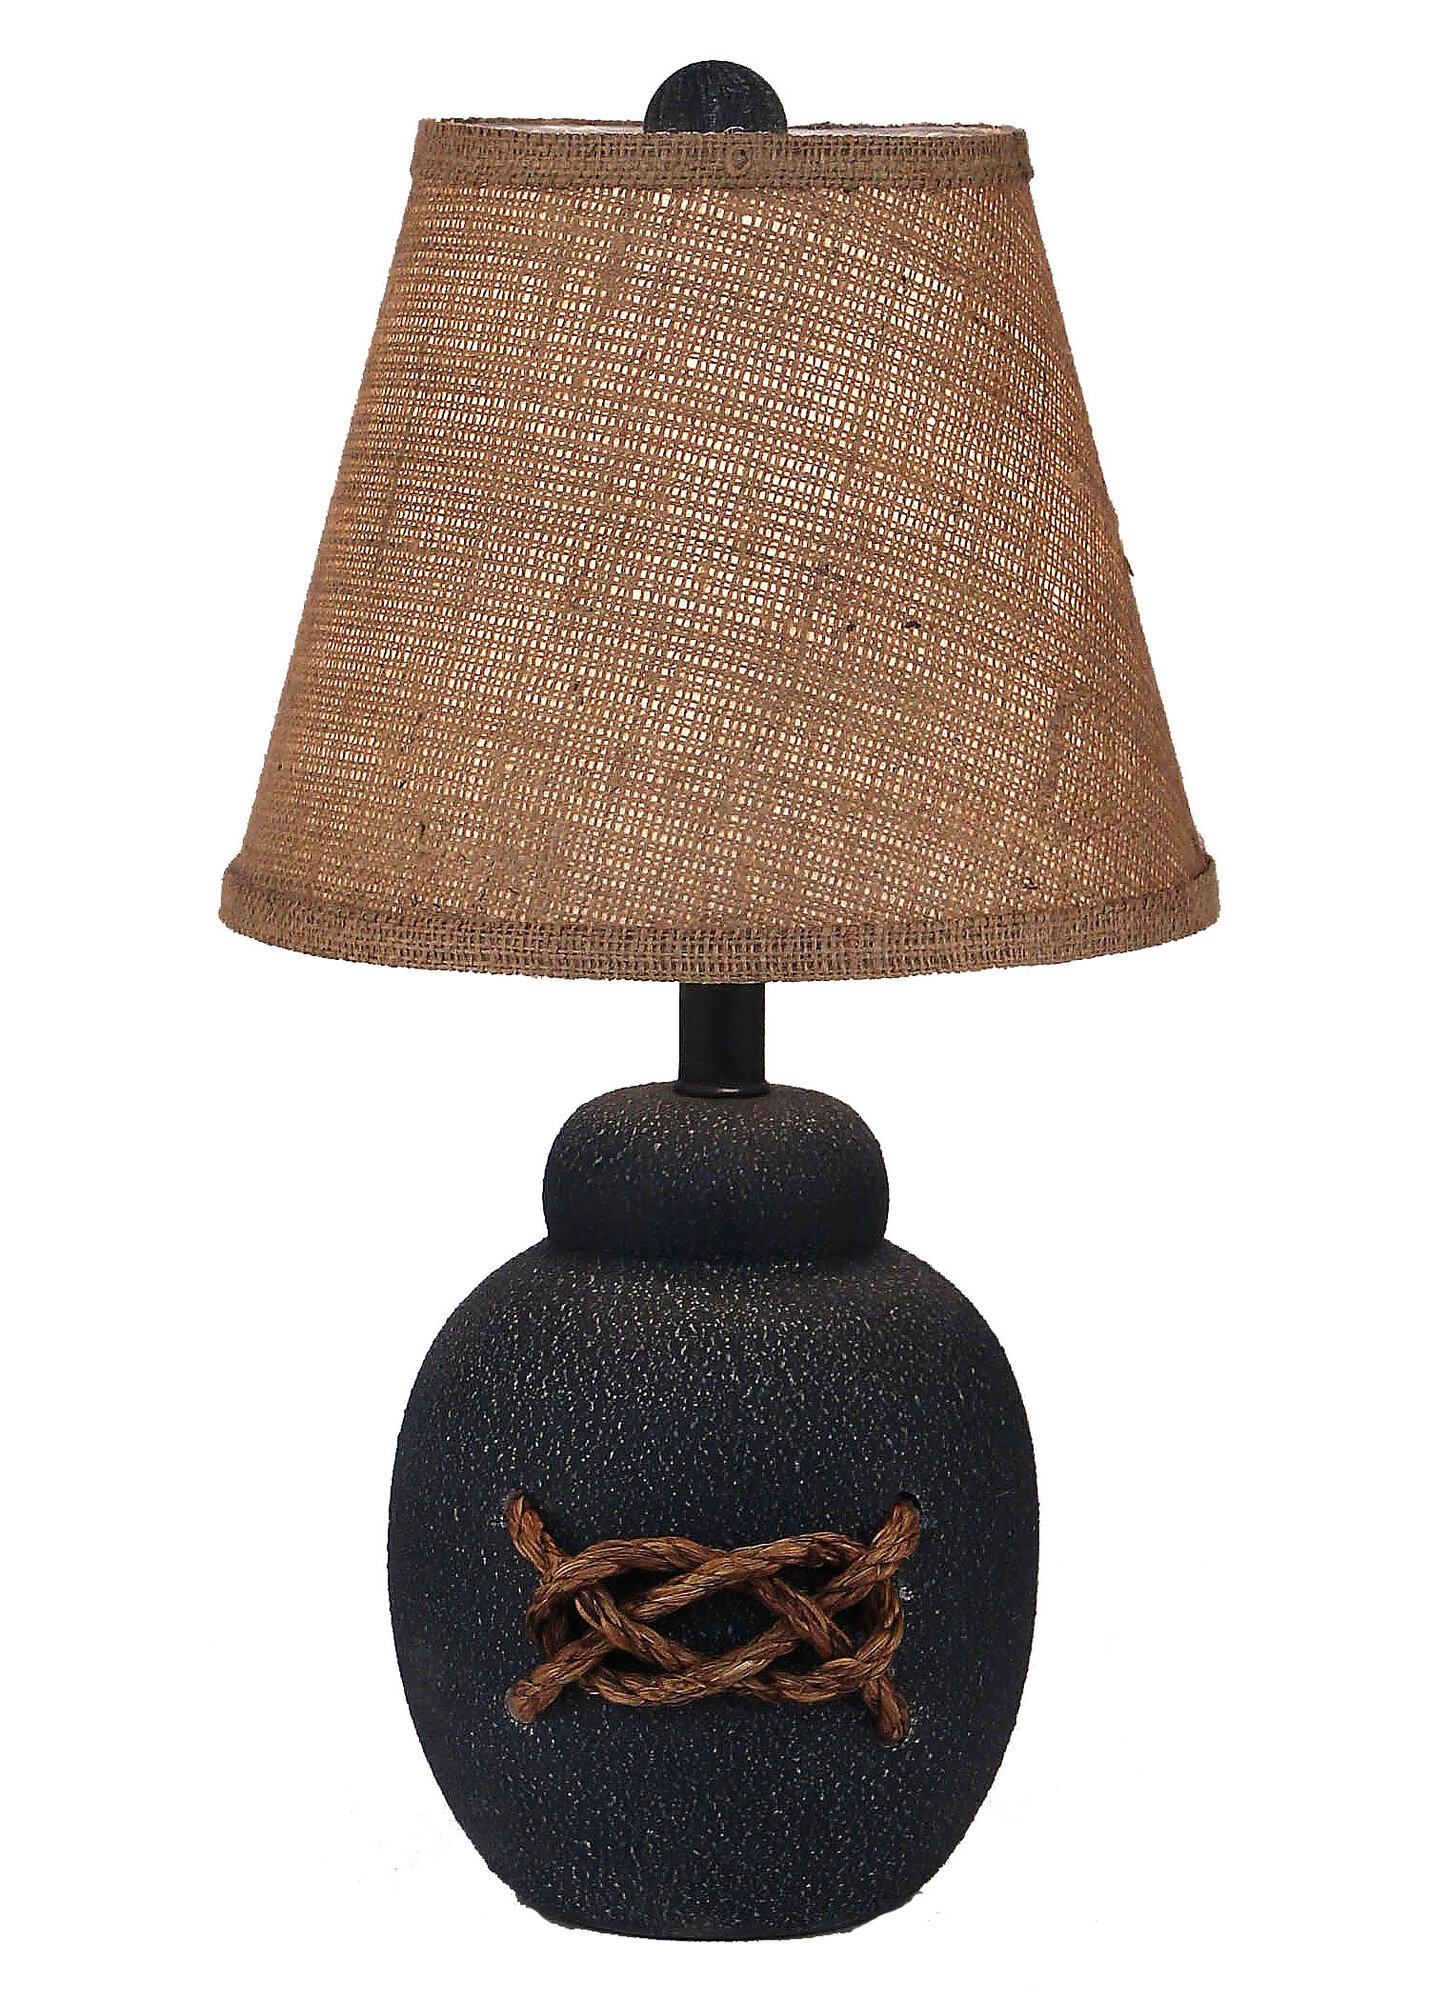 "Coastal Living Bean Pot 18"" H Table Lamp with Empire Shade"